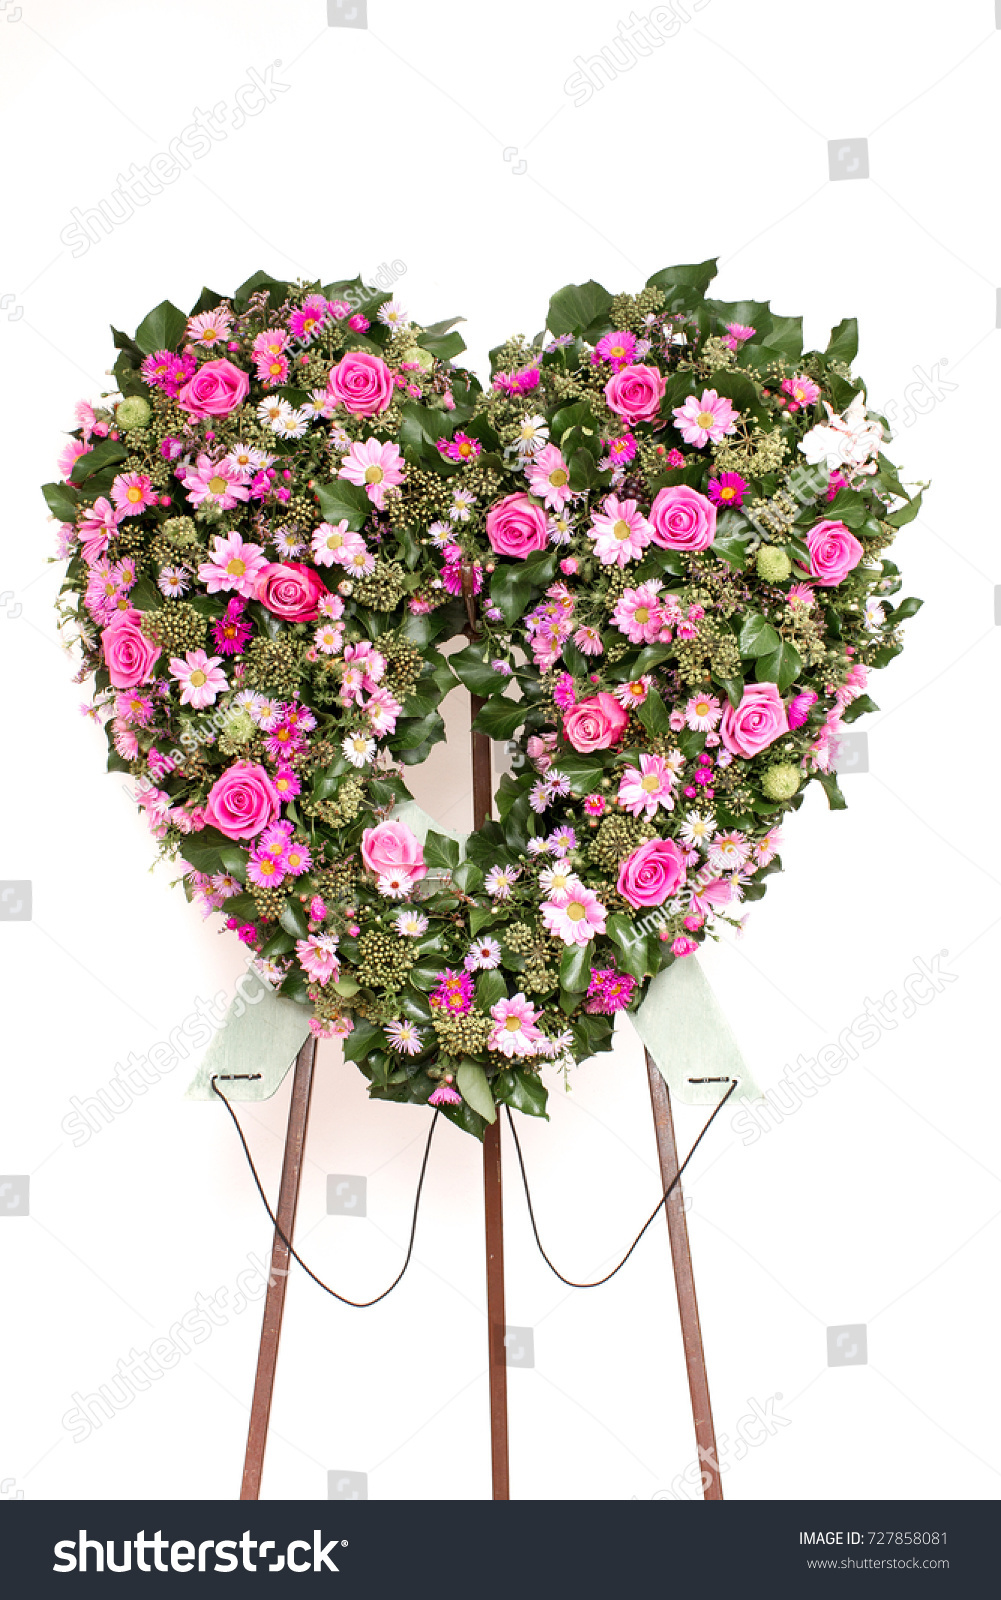 Heart shaped sympathy flowers funeral wreath stock photo 100 legal heart shaped sympathy flowers or funeral wreath flowers pink roses and gerbers and eucalyptus izmirmasajfo